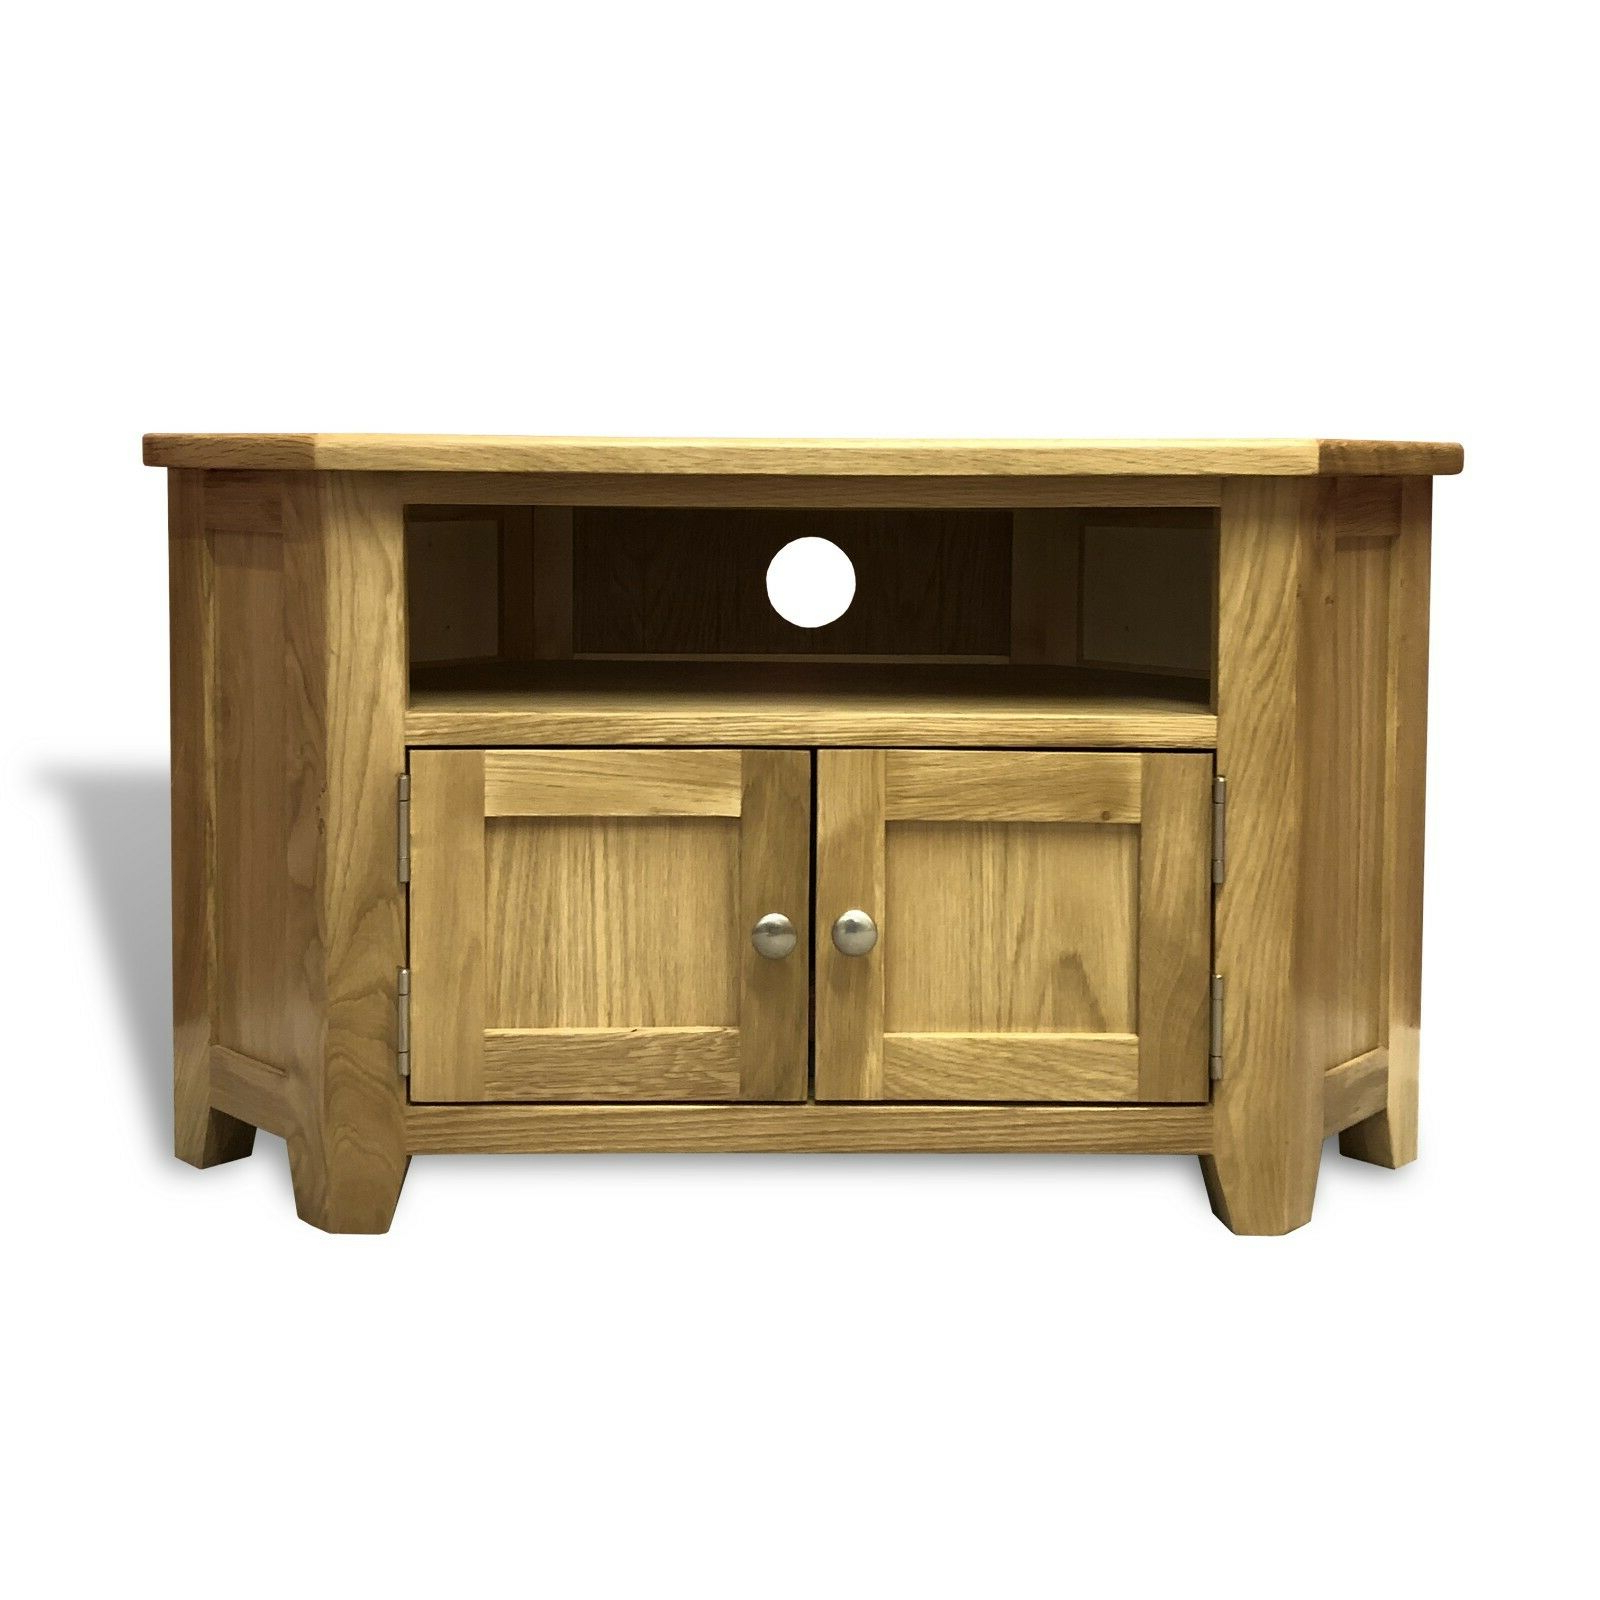 Most Popular Tribeca Oak Tv Media Stand For Oak Corner Tv Stand With Doors / Solid Wood Television (View 2 of 10)